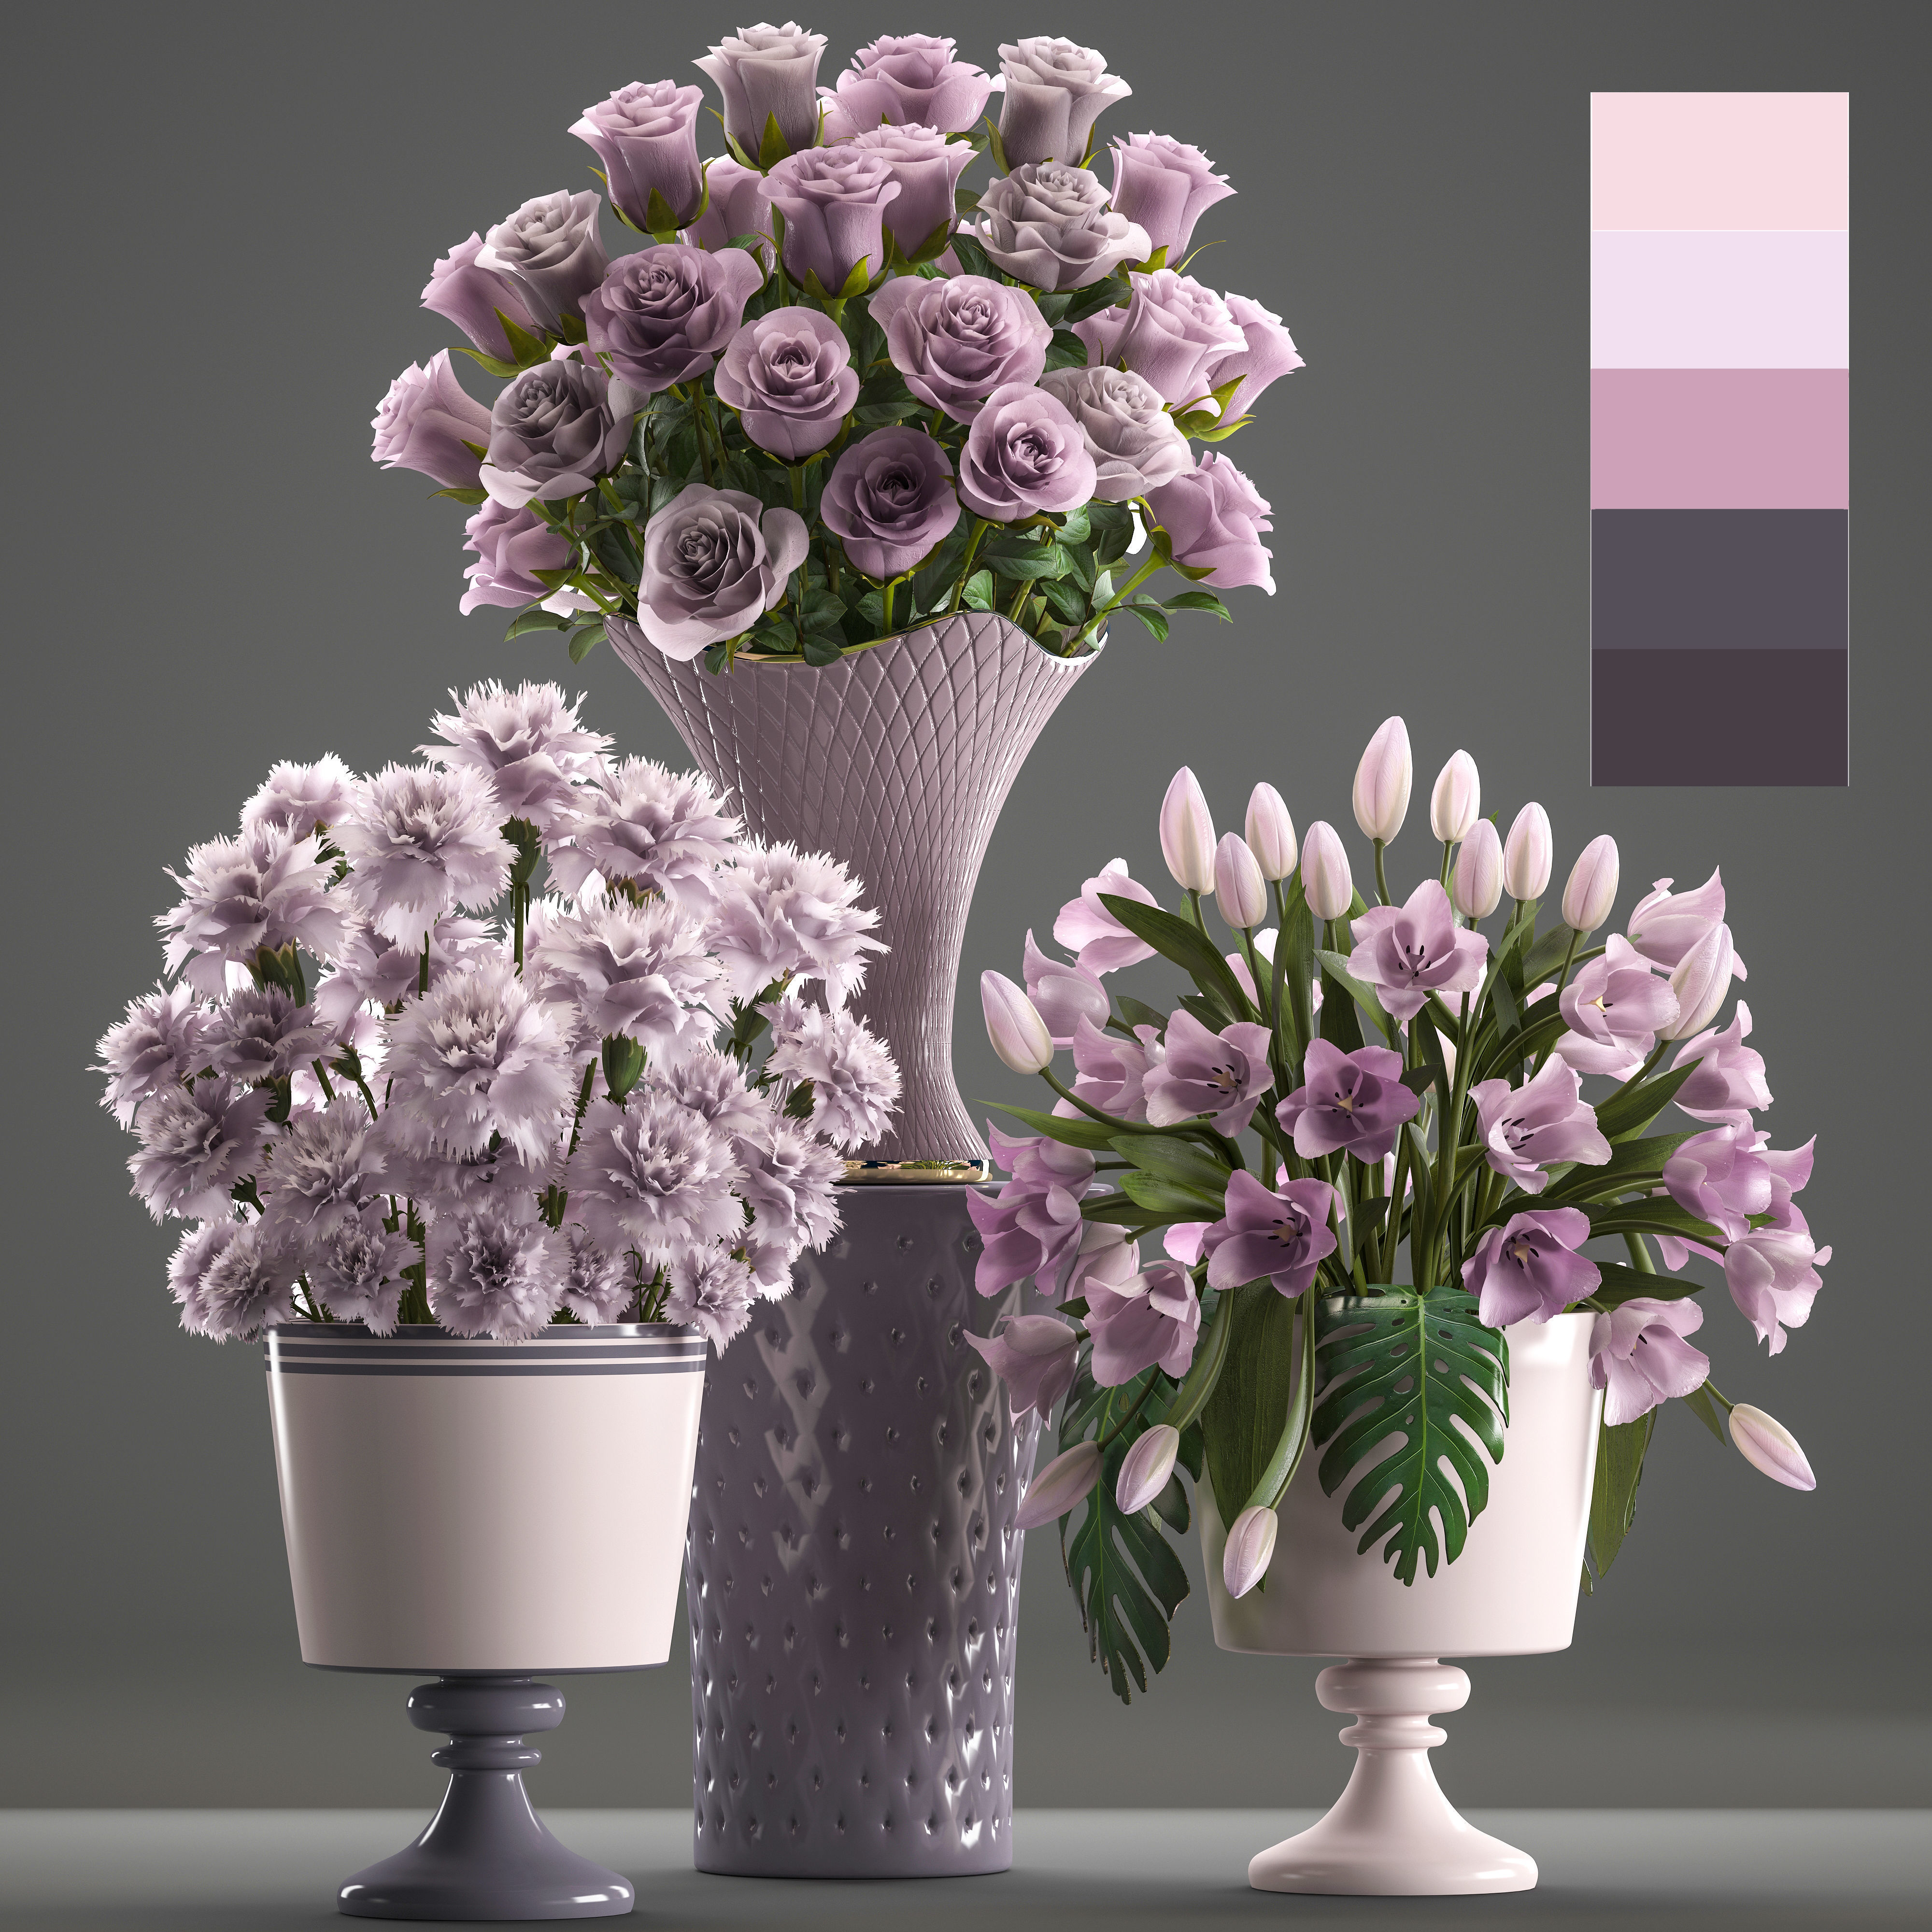 CGTrader & Bouquets of flowers in vases | 3D model